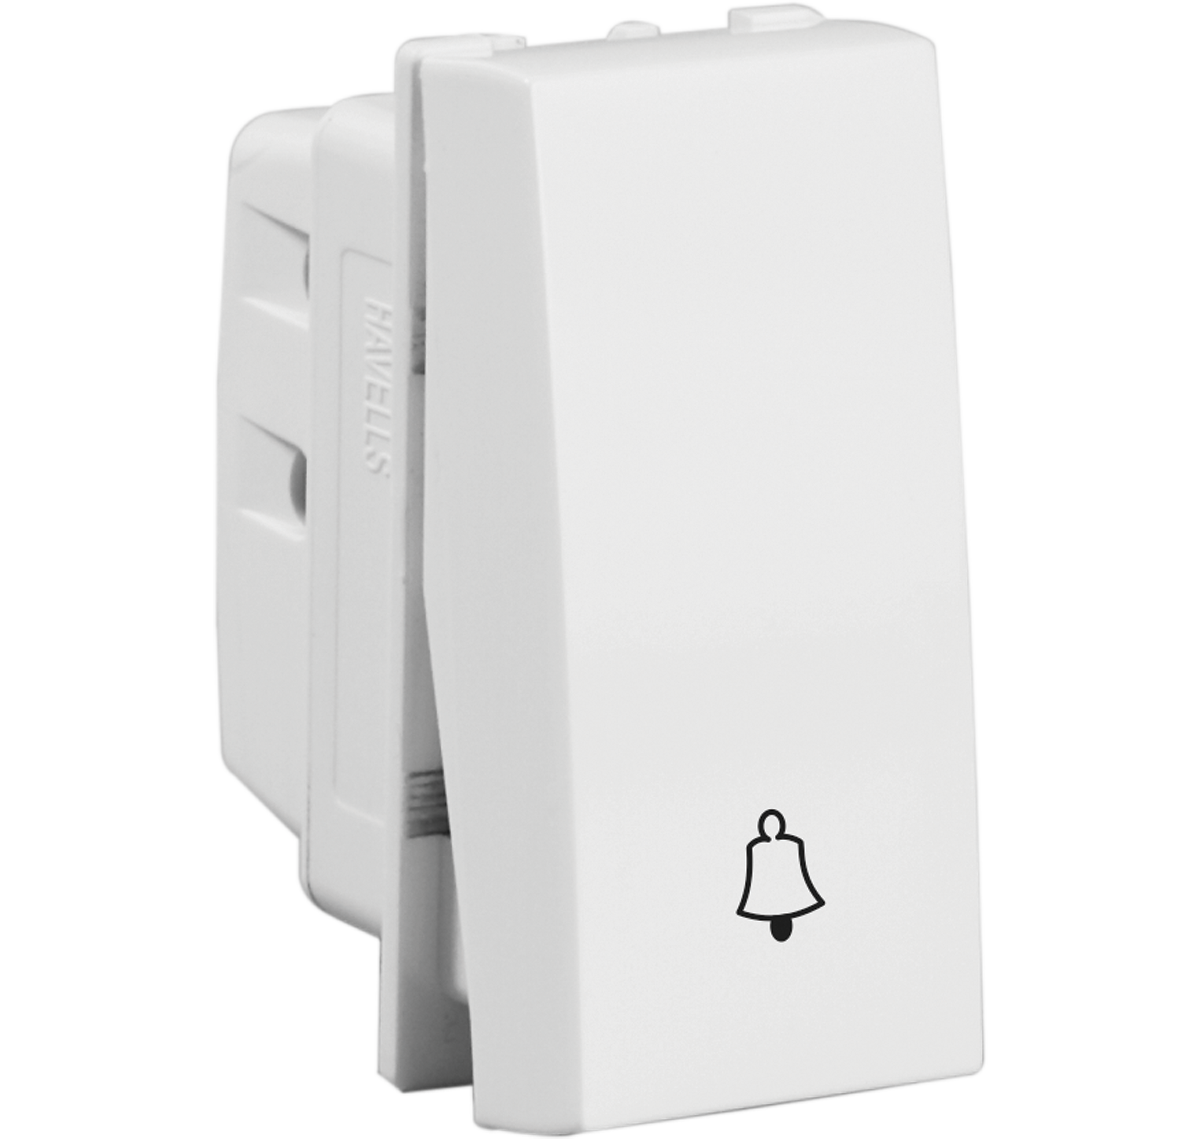 6 AX Bell push Switch